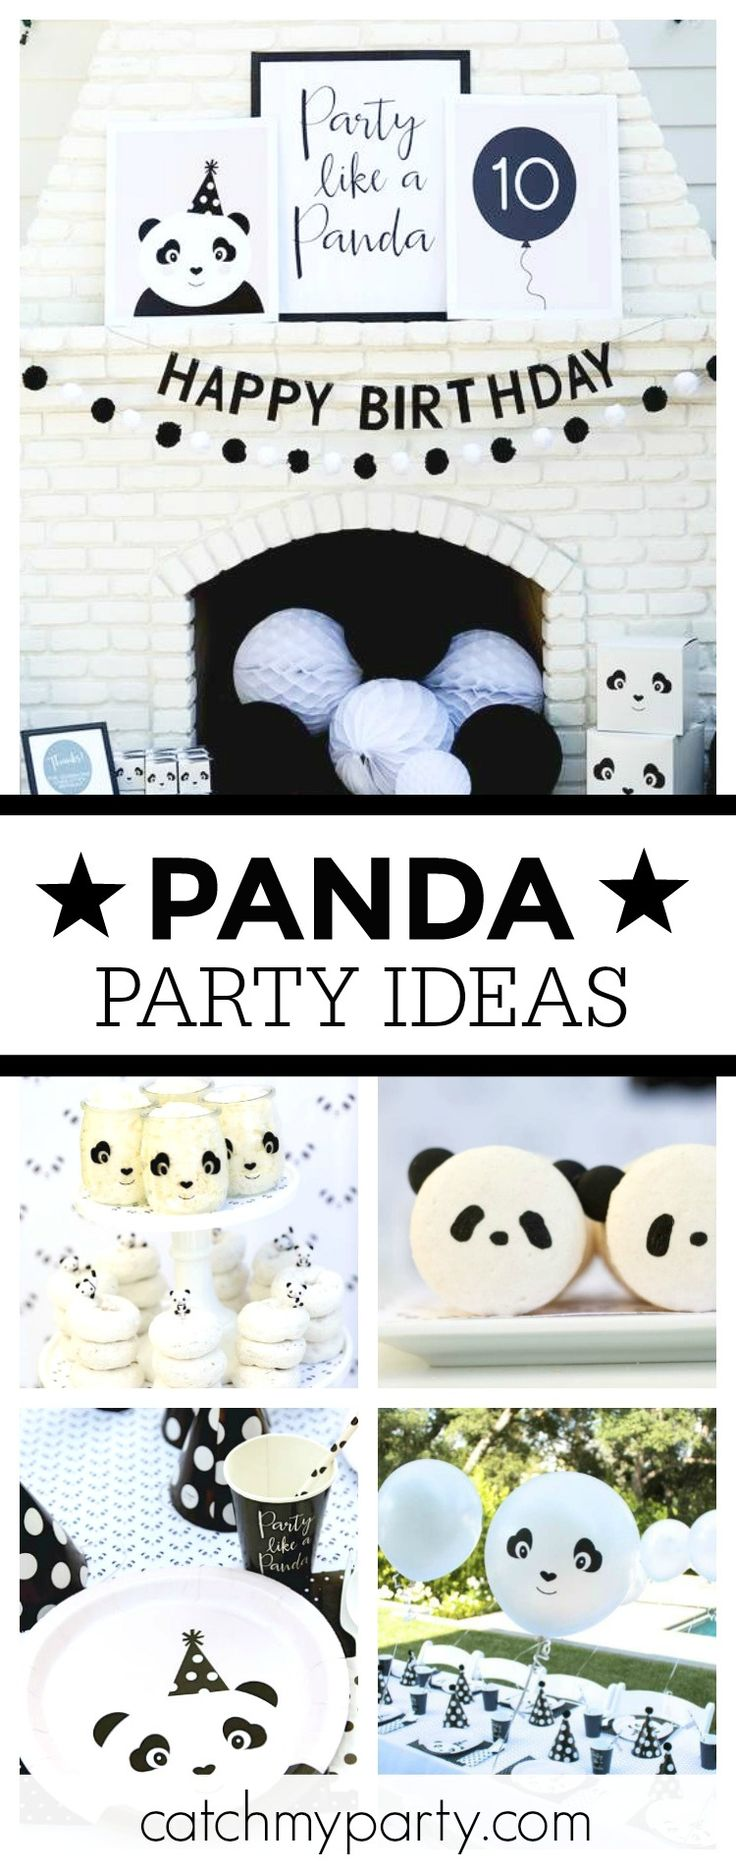 Take a look at this fantastic black & white Panda birthday party! The table settings are so cool!! See more party ideas and share yours at CatchMyParty.com